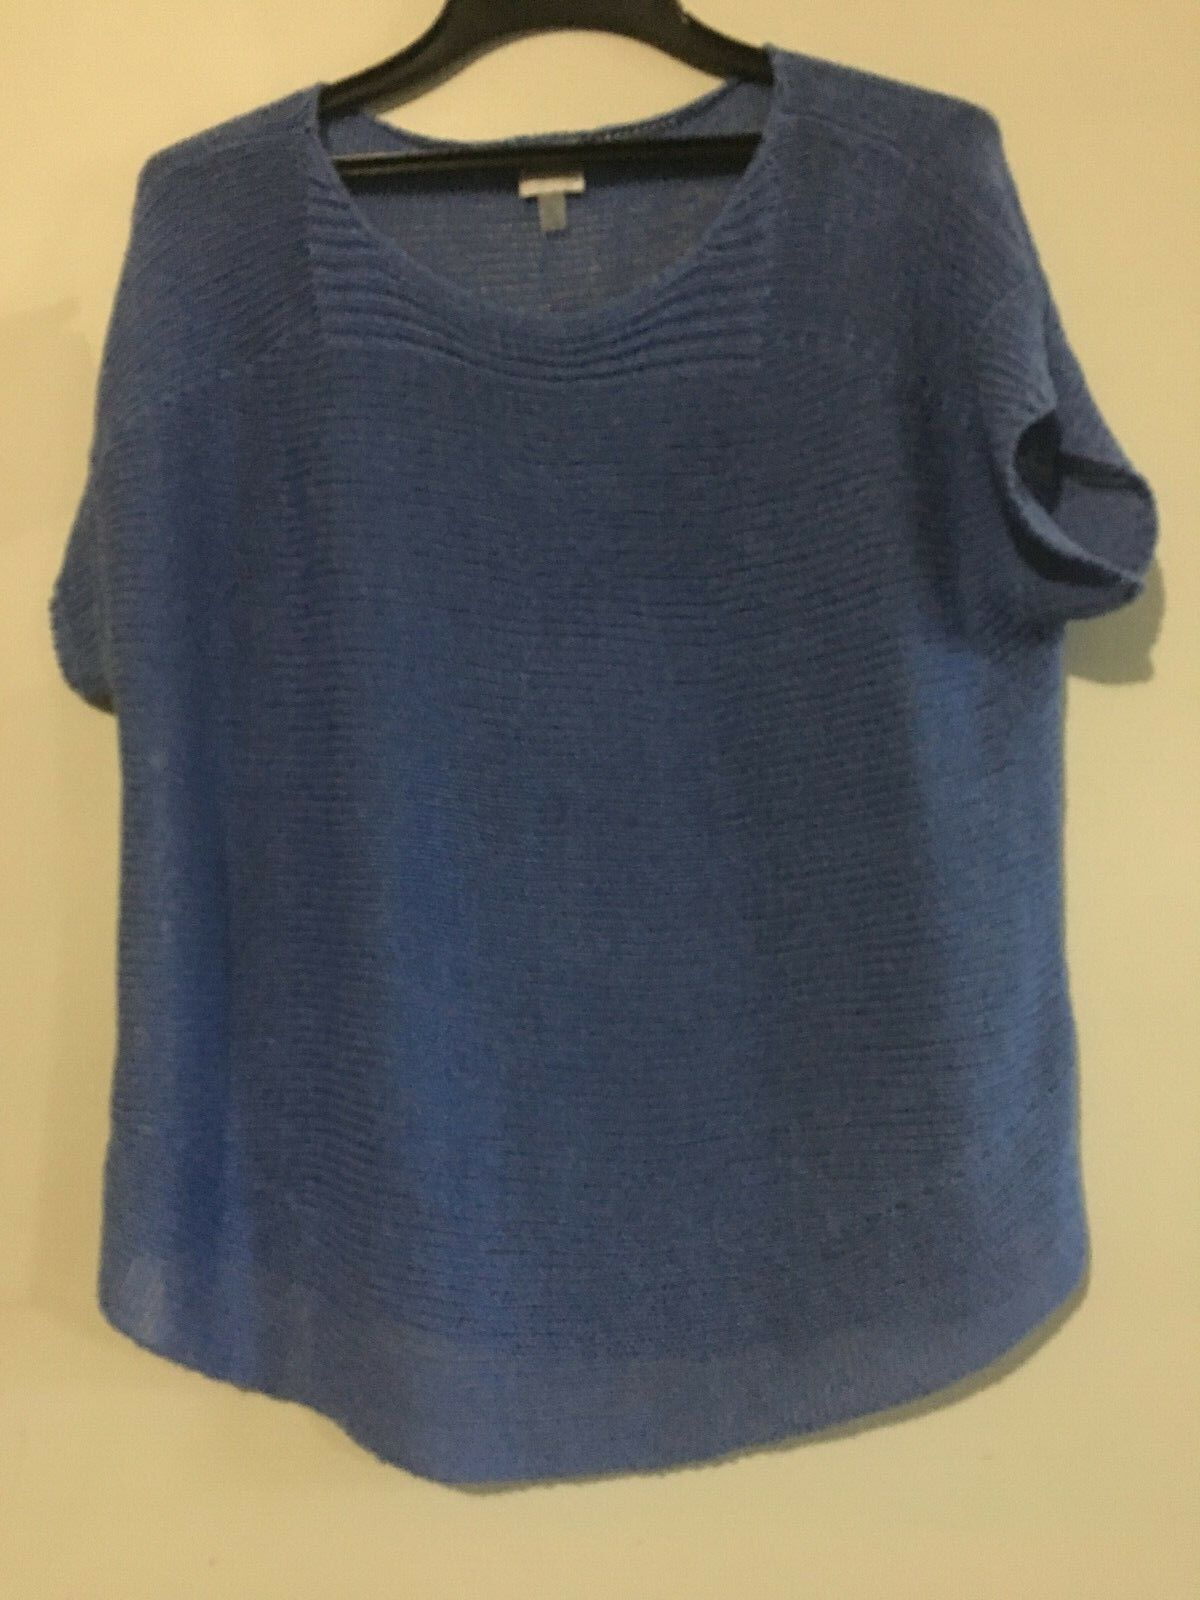 Cupio Sea bluee Knit Perforated Women Tunic Top Blouse Size XL Stylish RN